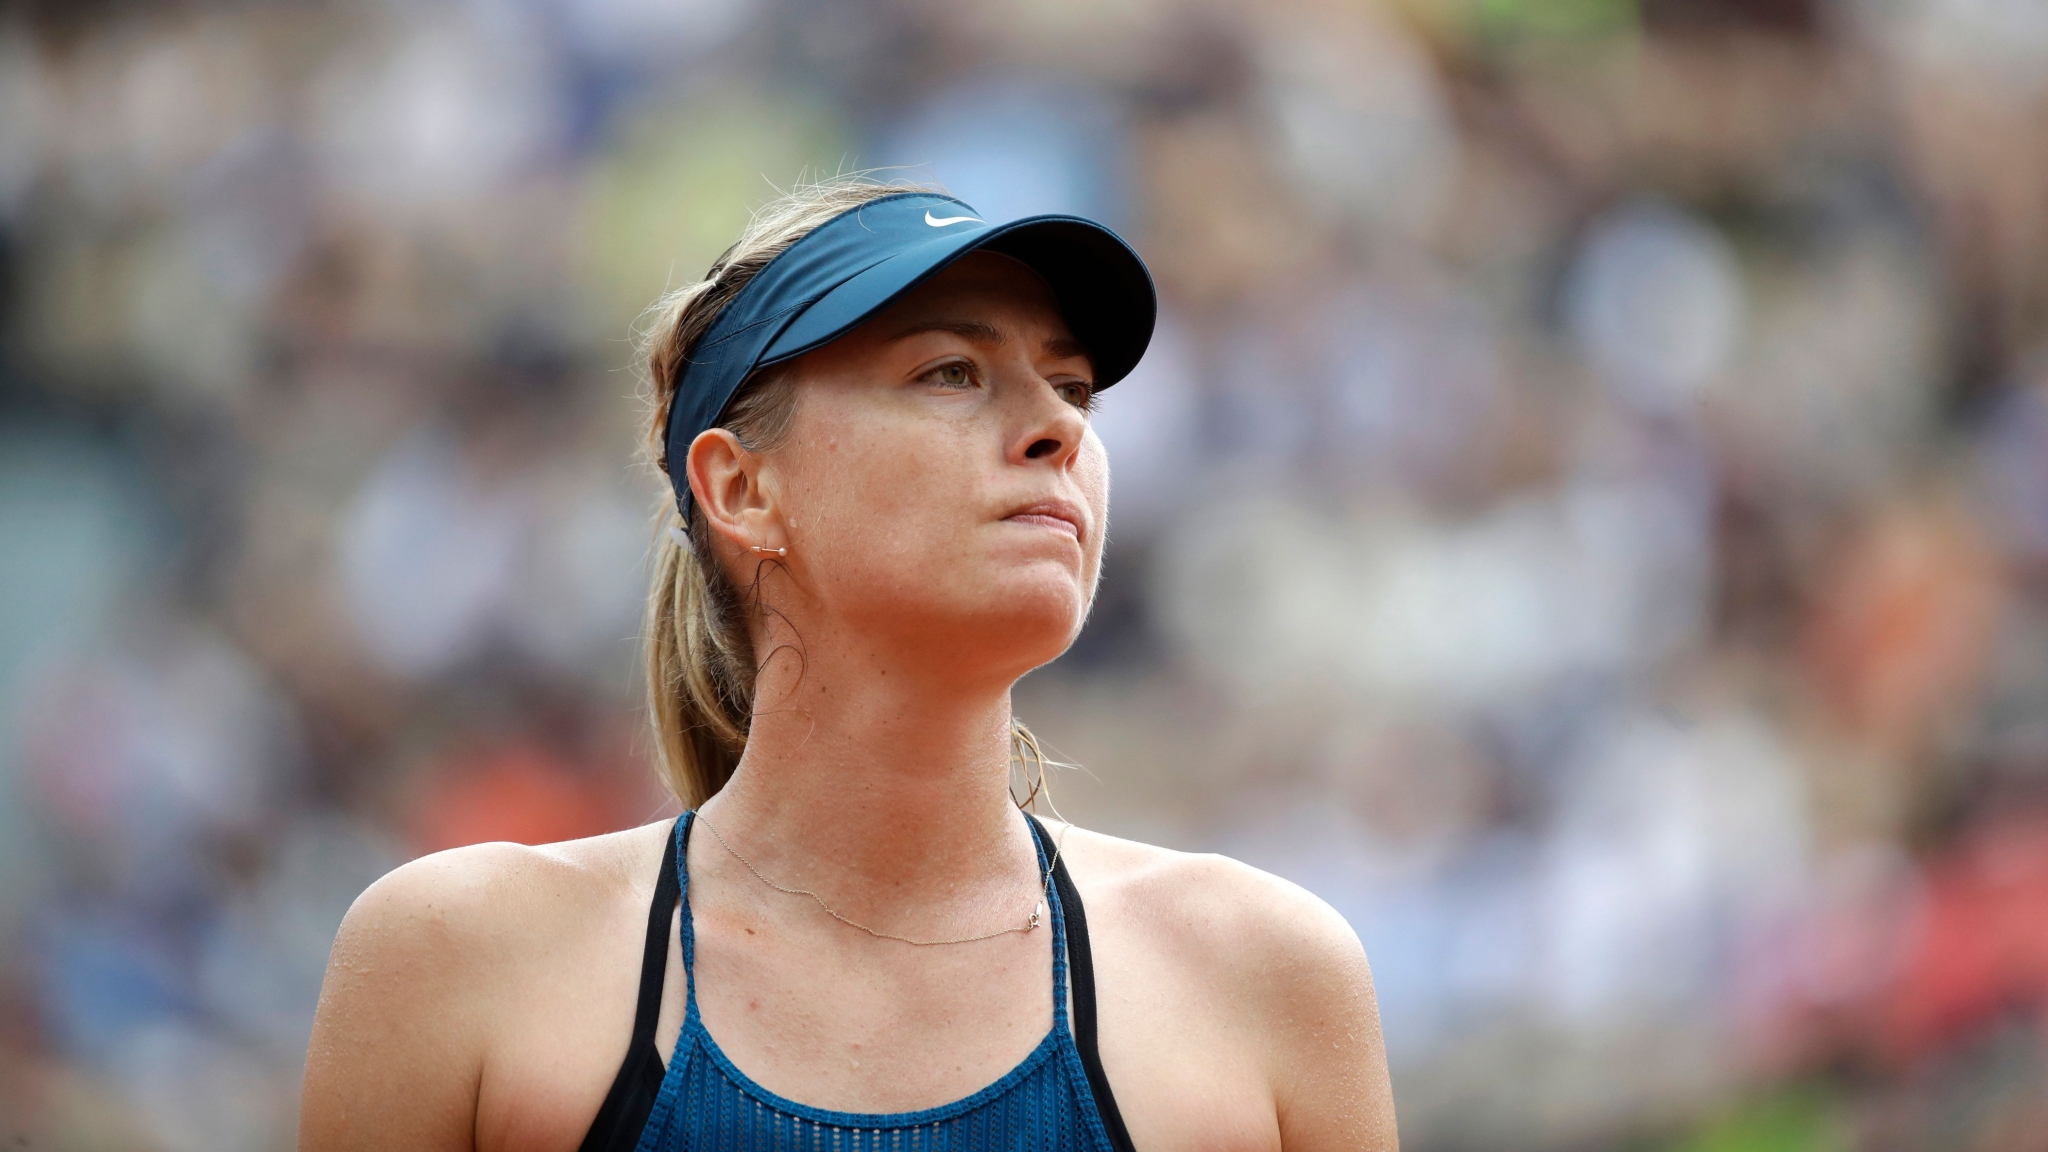 Maria Sharapova Set for Return After Lengthy Injury Absence